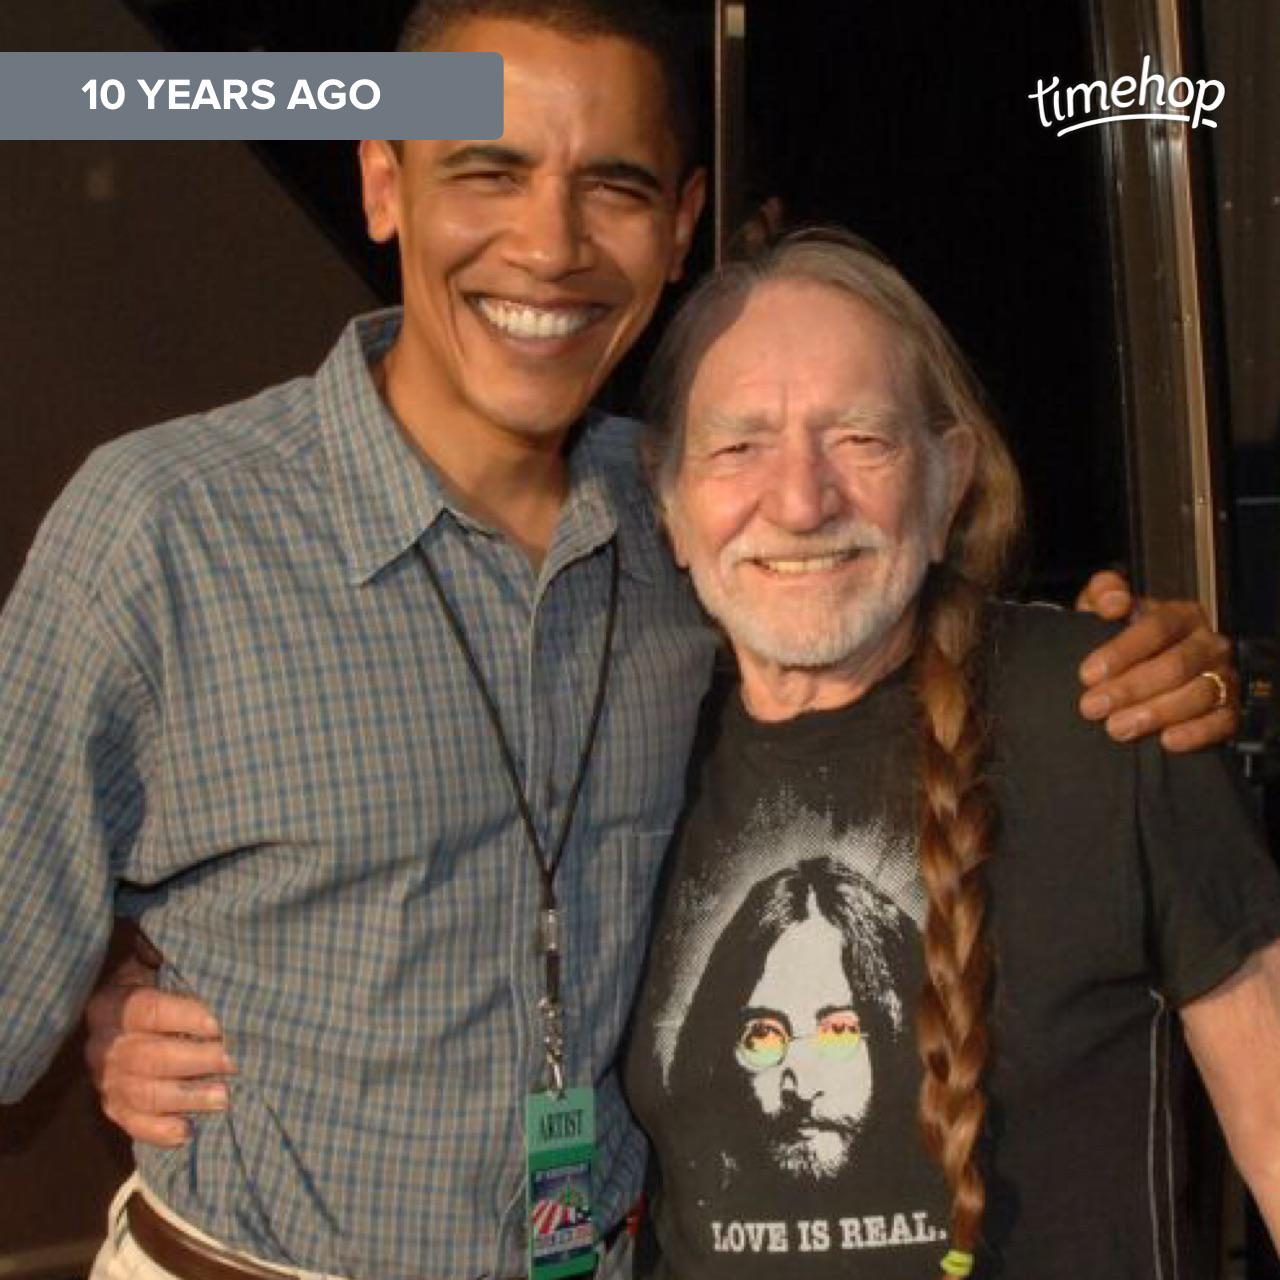 I posted this amazing photo 10 years ago today. (I didn't take the photo.) #timehop  http://t.co/tyeKQudyzh http://t.co/BMnHrWYw5u